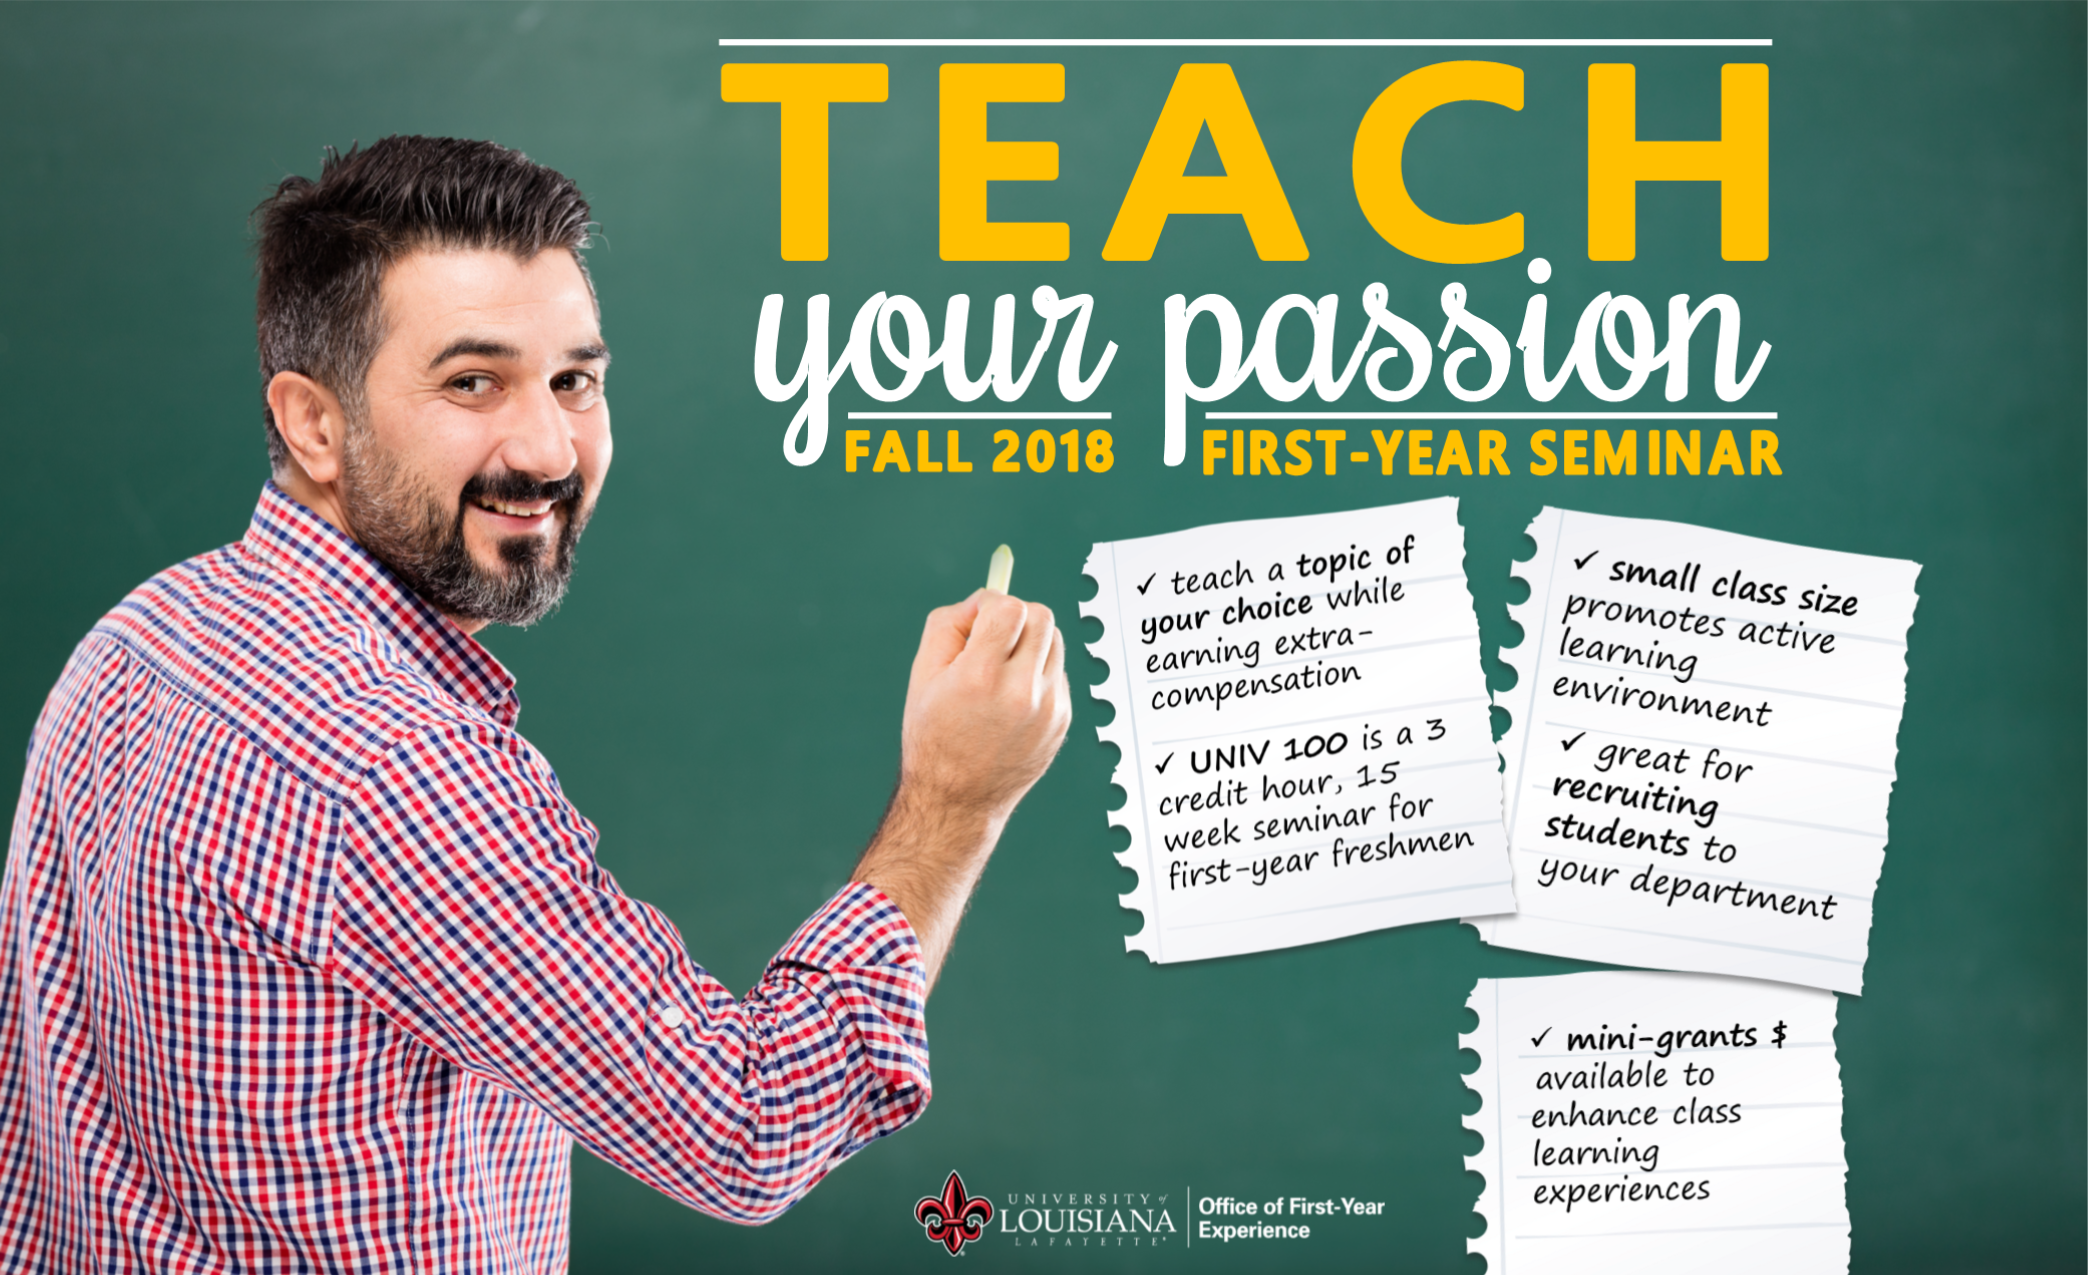 Teach Your Passion!